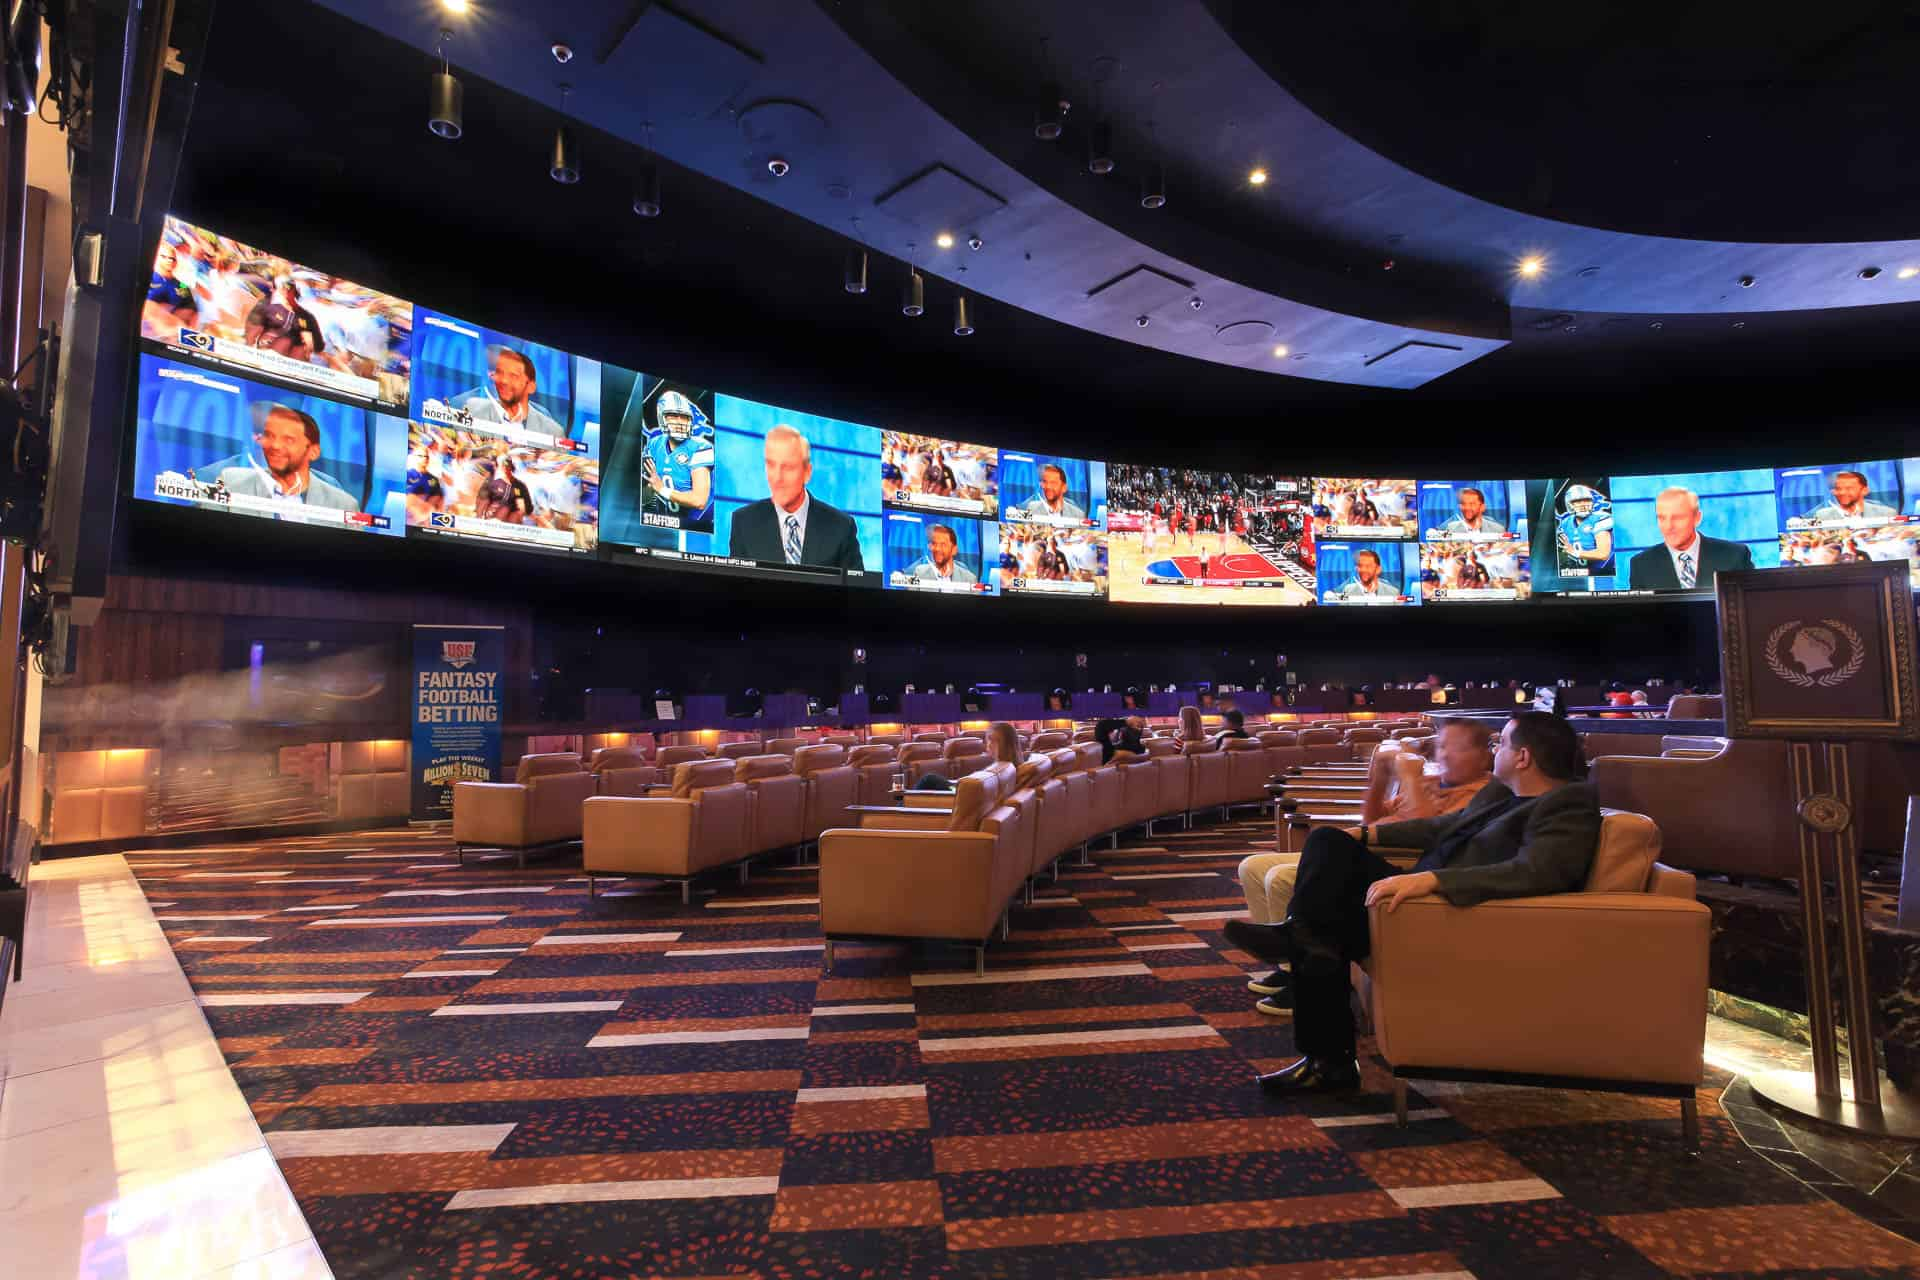 Betting limits at caesars palace sports book discover card sports betting